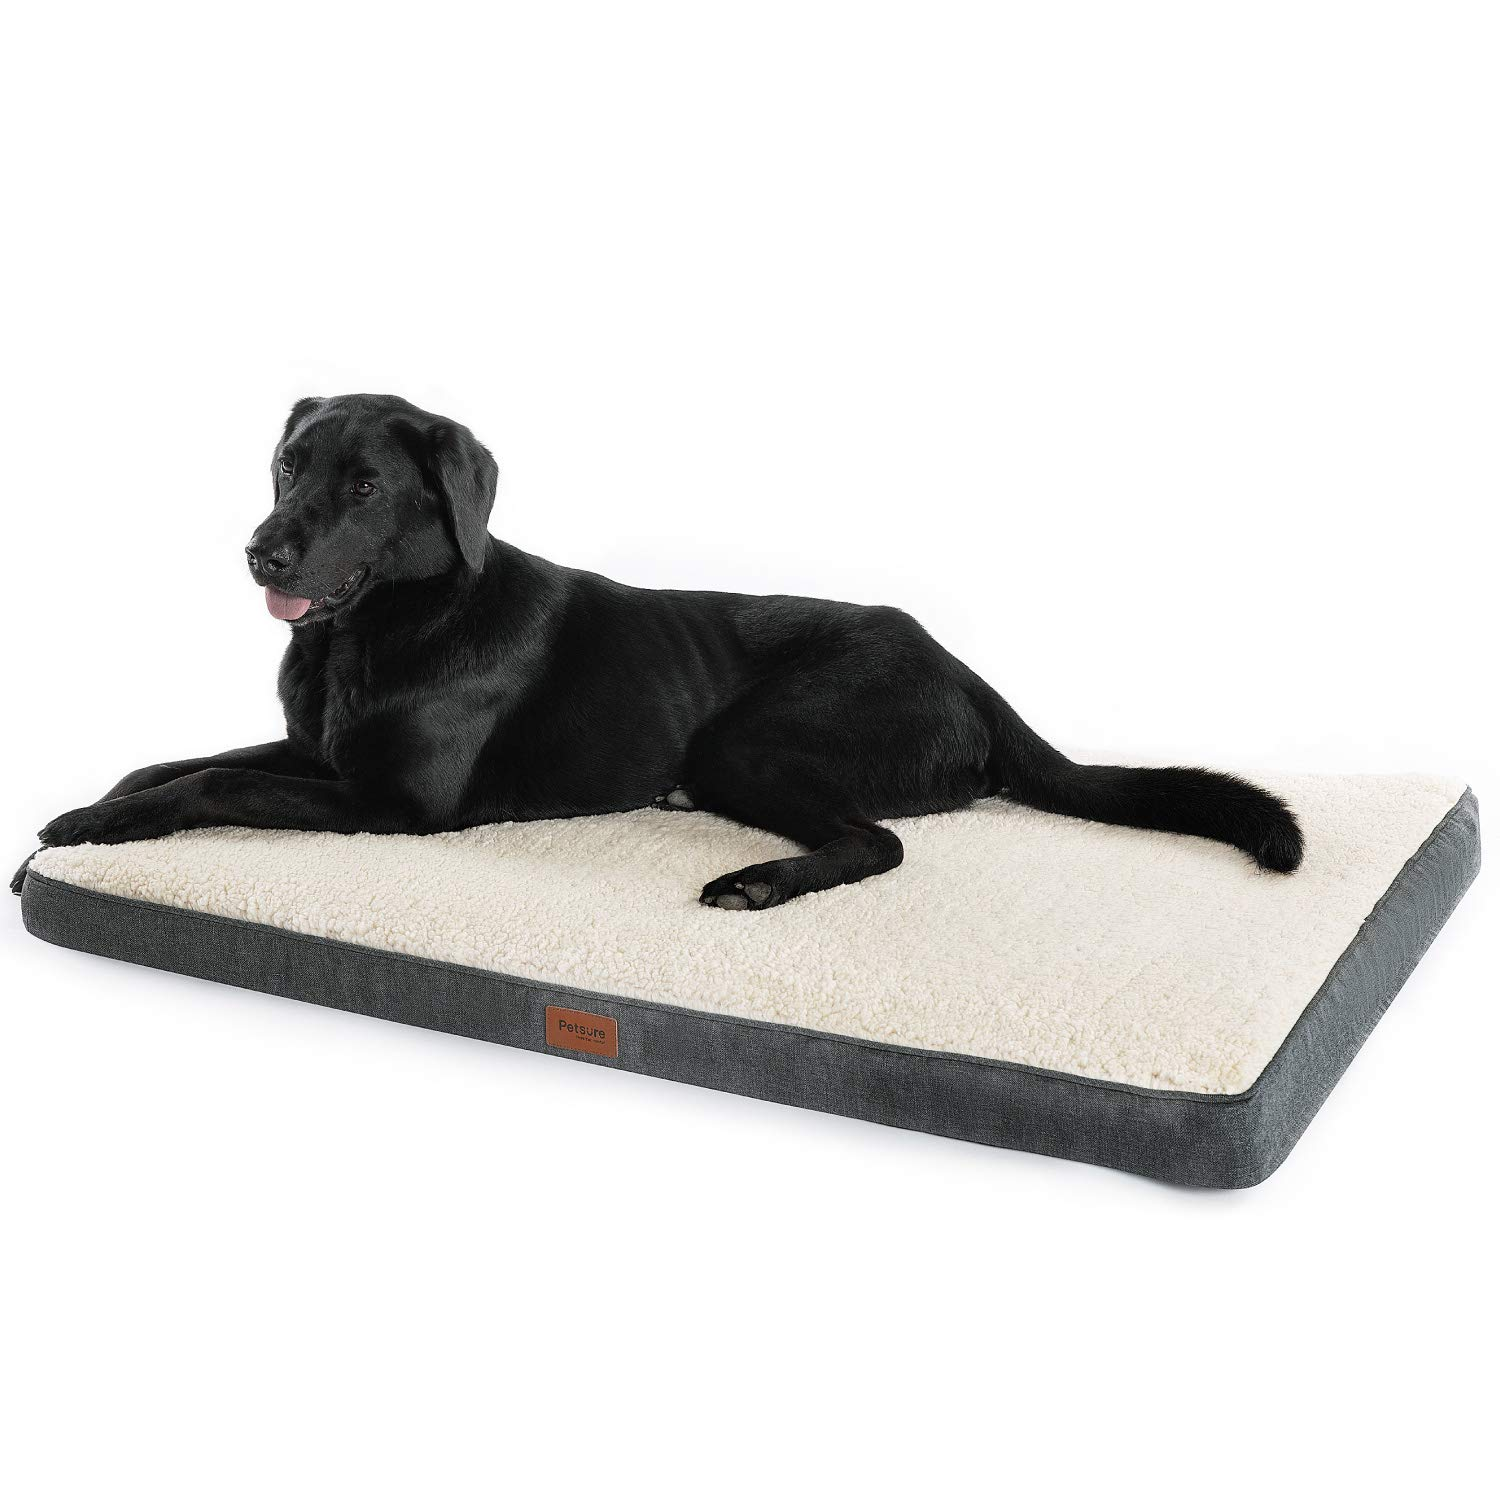 Petsure Orthopedic Dog Bed (XL, 44''x32''x3'') for Small, Medium, Large Pets Up to 100 lbs - Foam Dog Bed with Plush Sherpa Top - Washable Cover - Grey